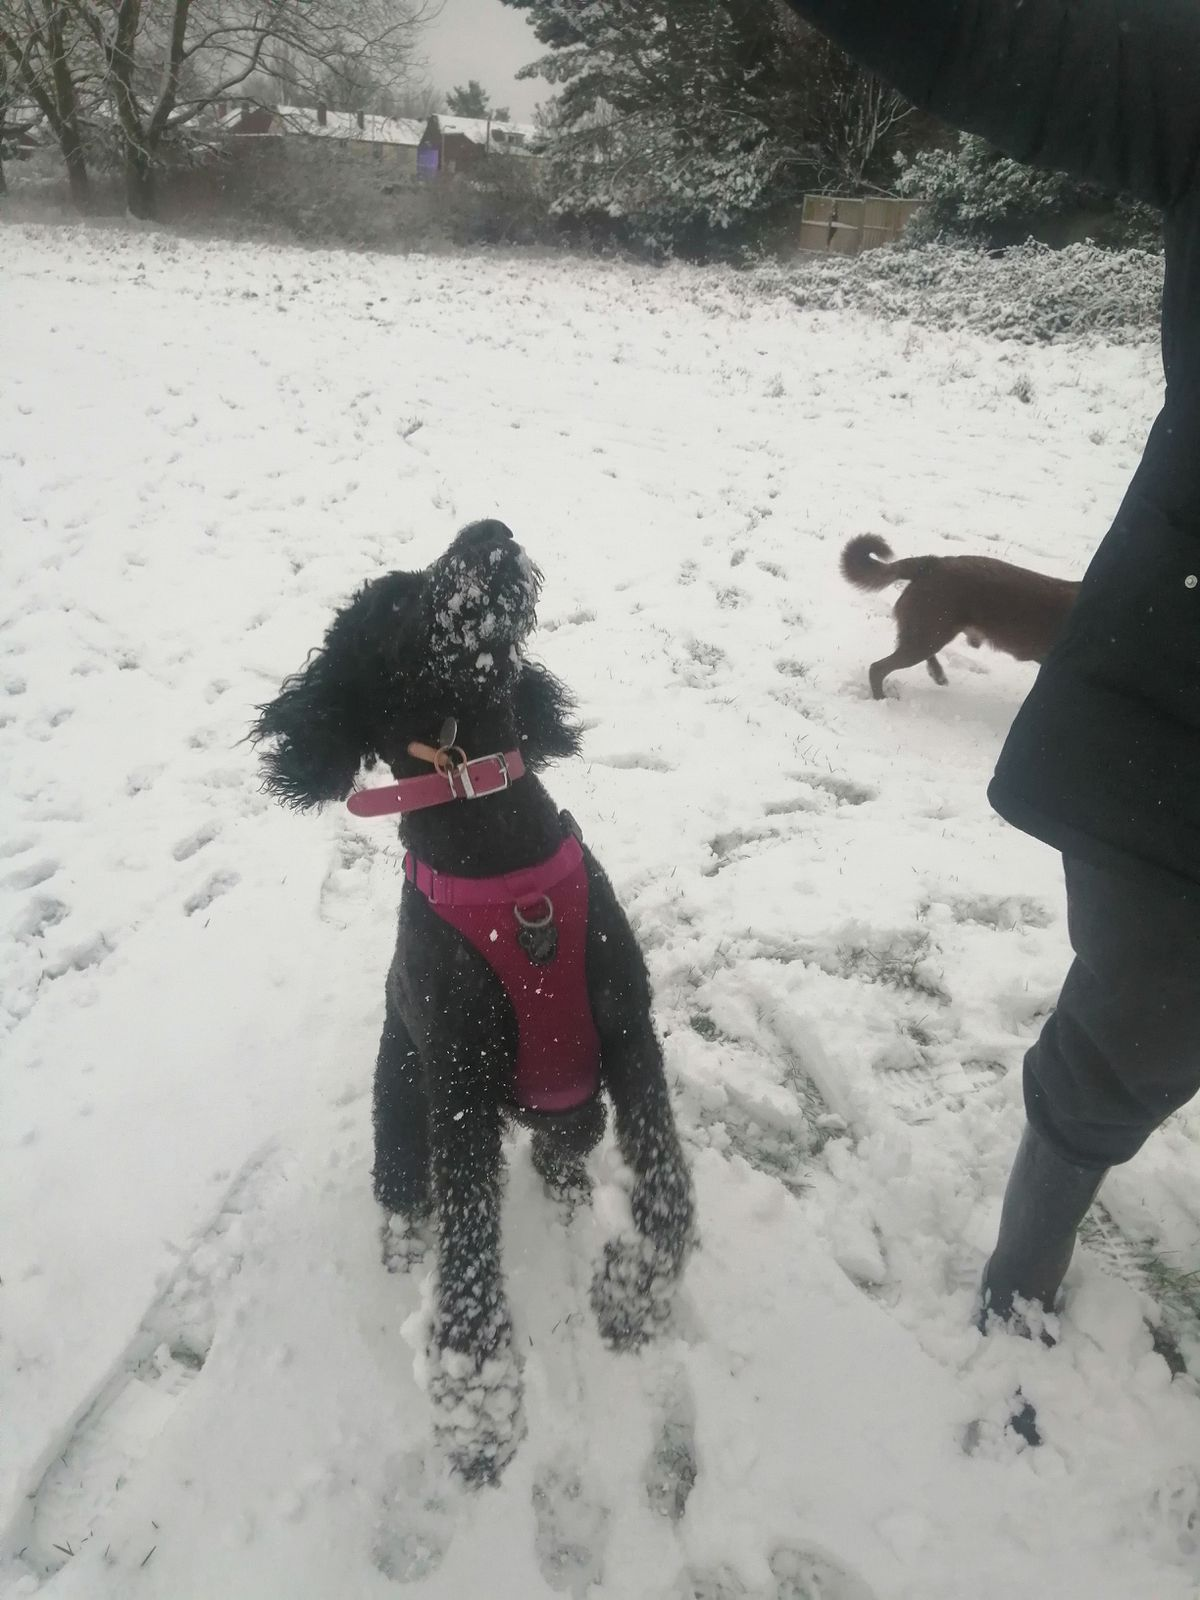 Raven the dog catching snowballs in Parkfields, Wolverhampton. Photo: Layla Duncombe